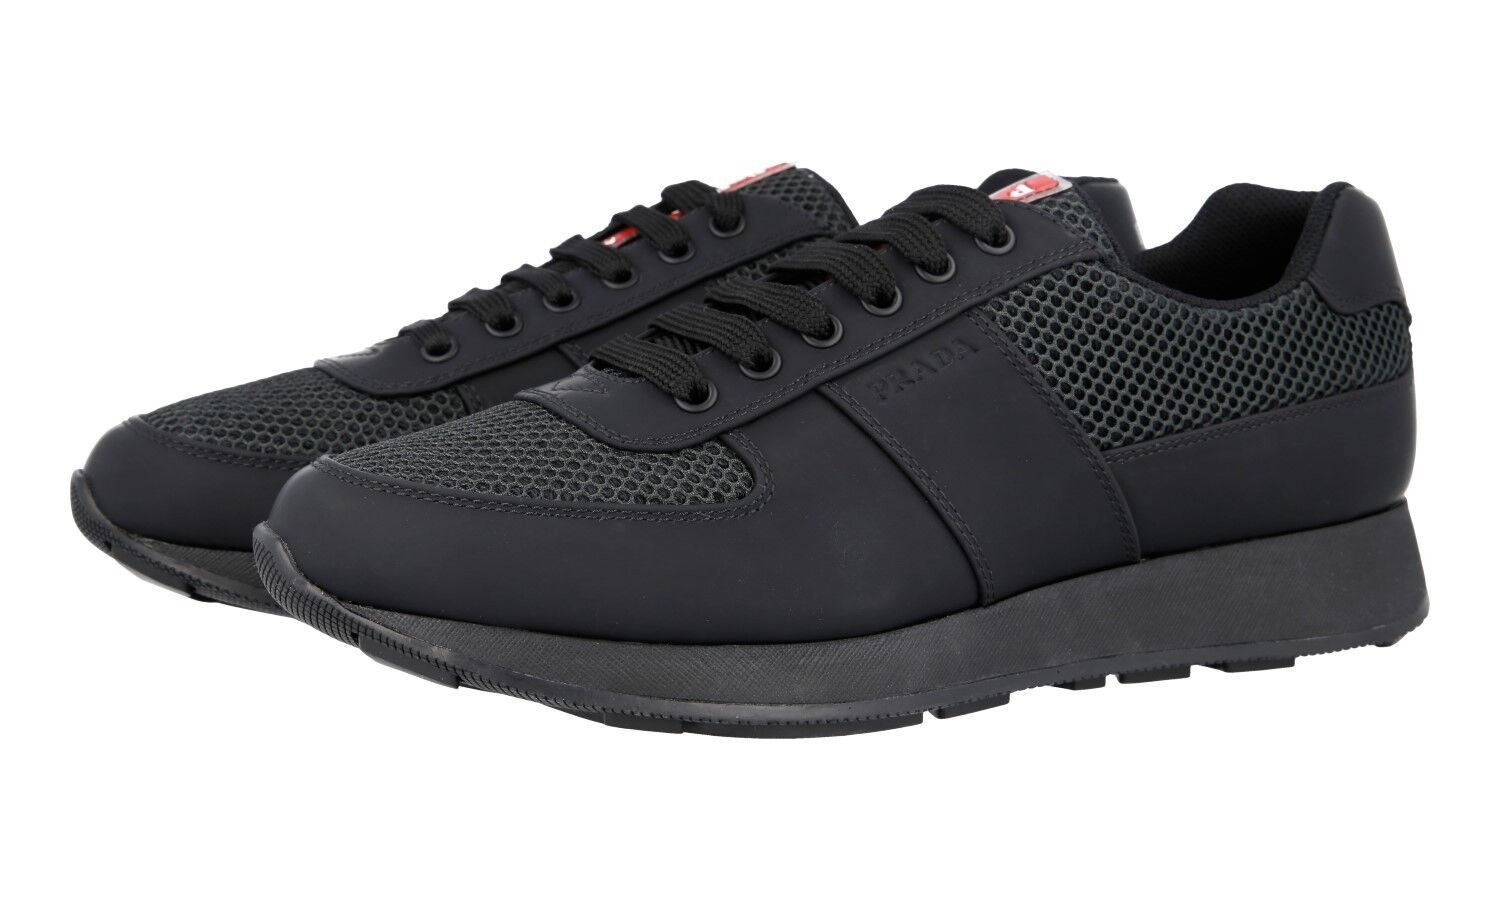 AUTH PRADA TRAINERS SHOES 4E3341 BLACK RUBBERIZED LEATHER 7 41 41,5